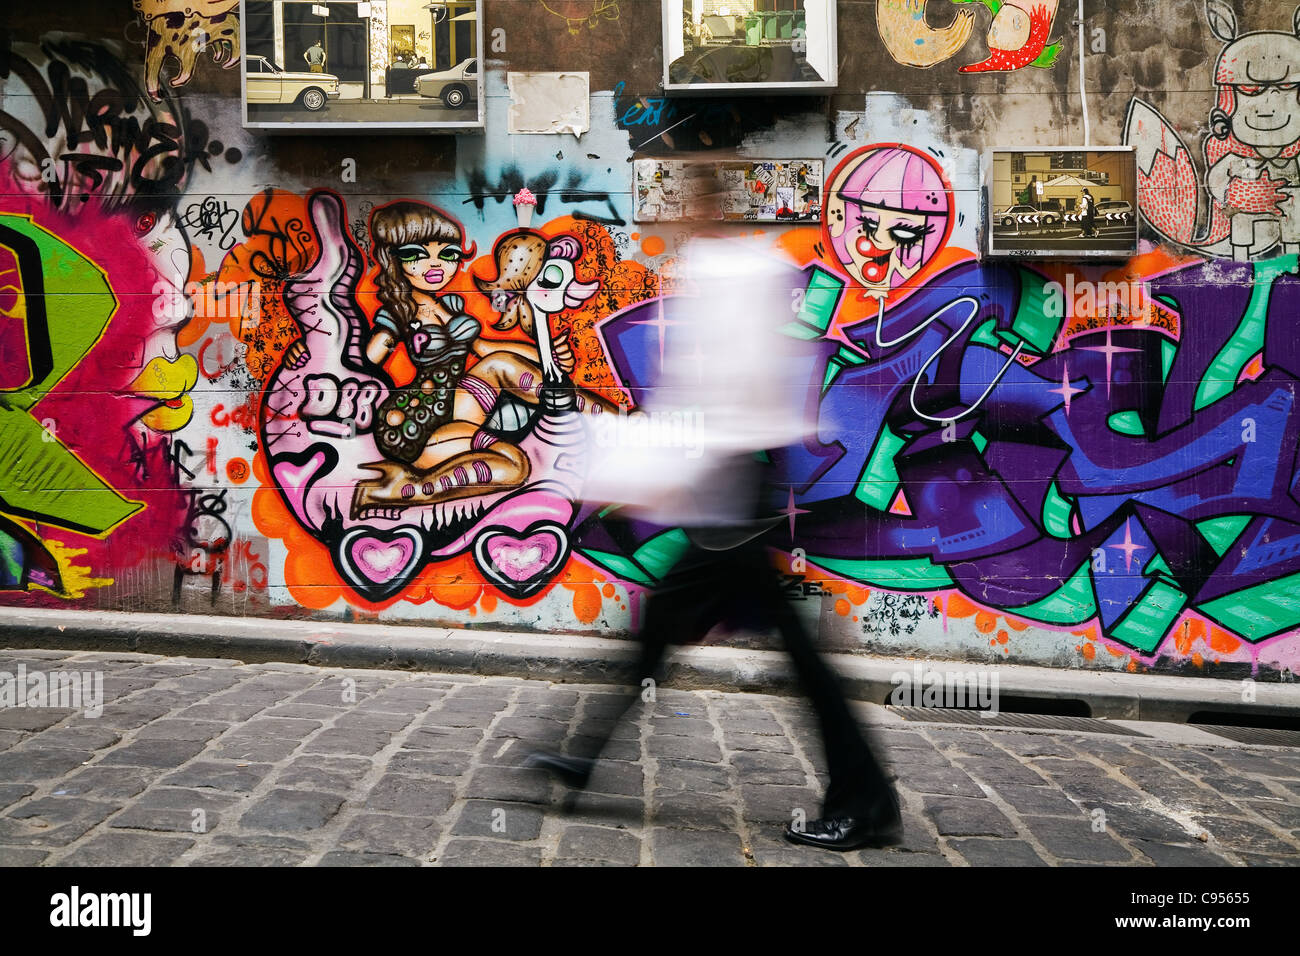 Colourful street art decorates the walls of Hosier Lane in central Melbourne, Victoria, Australia - Stock Image